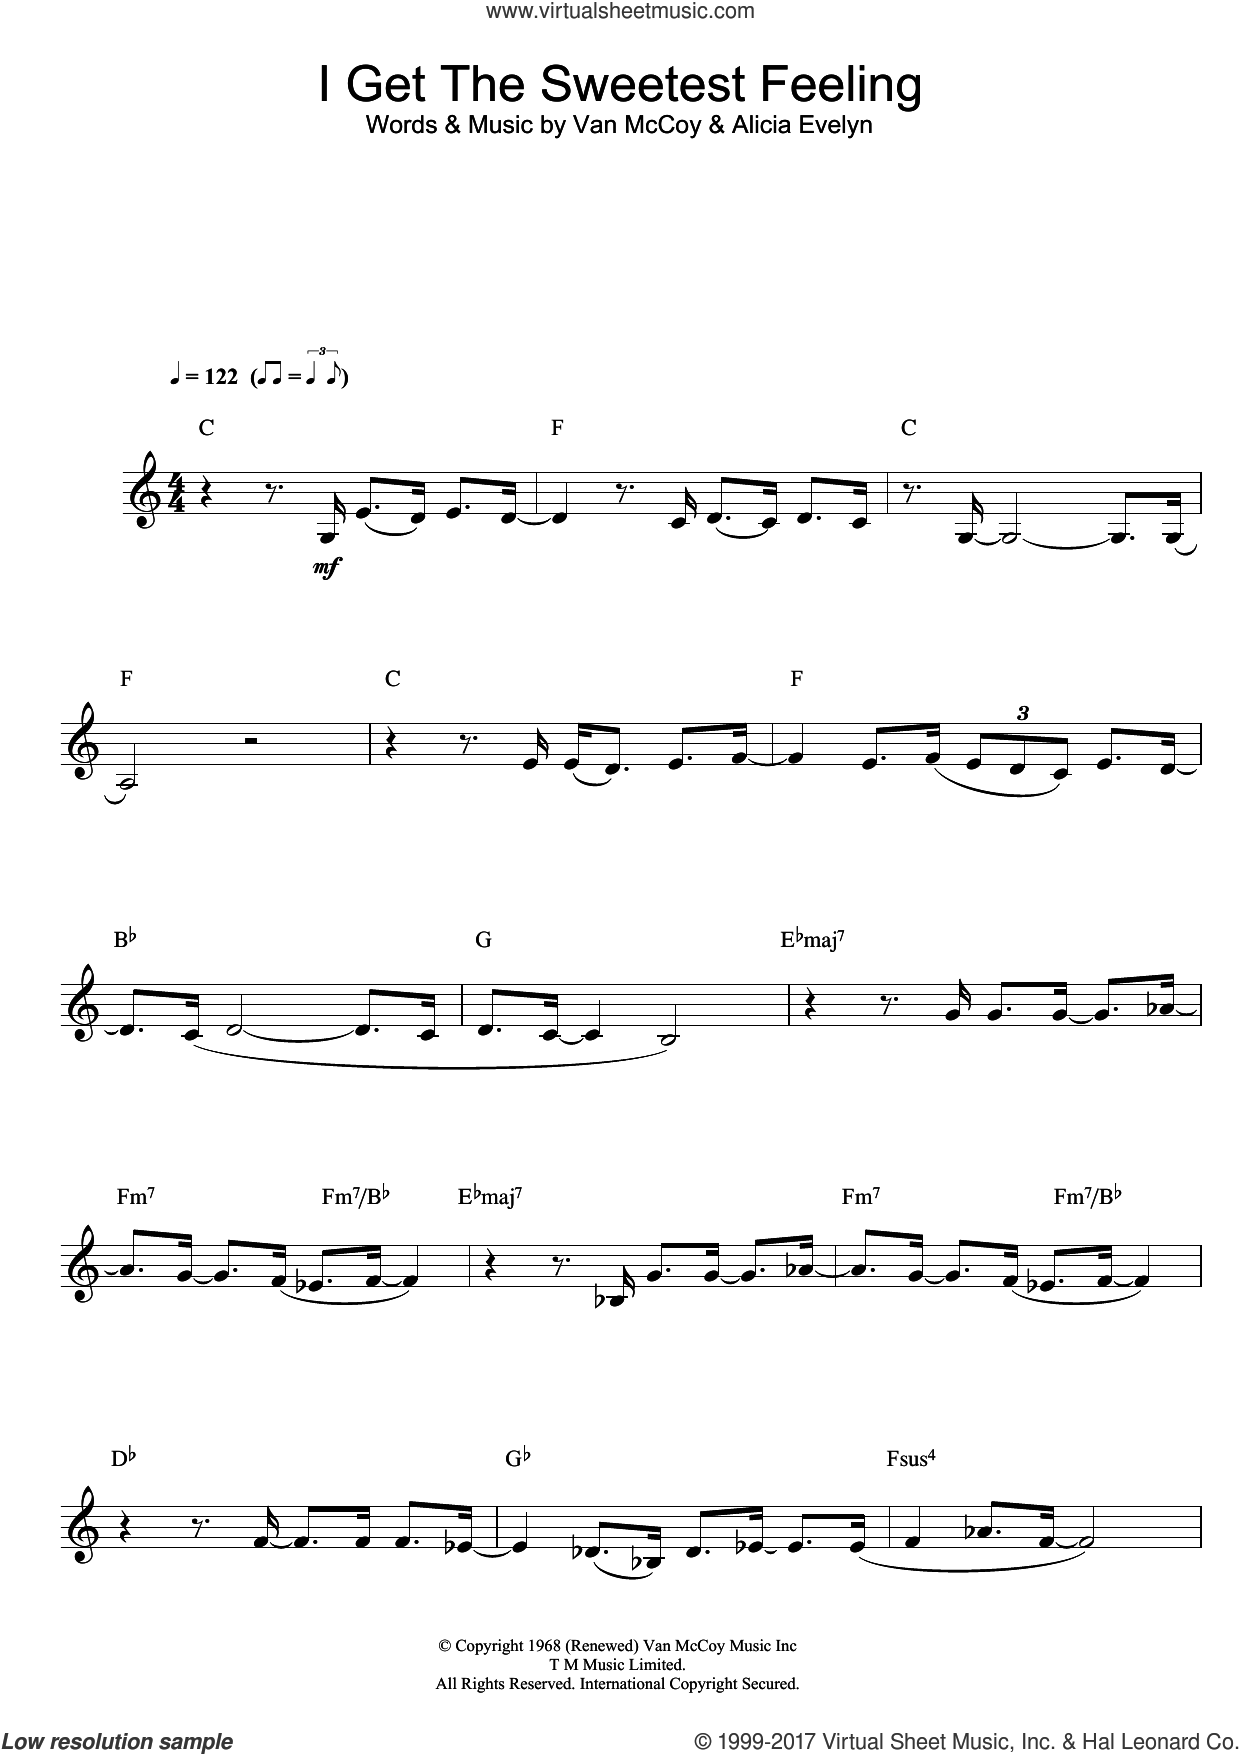 I Get The Sweetest Feeling sheet music for clarinet solo by Jackie Wilson, Alicia Evelyn and Van McCoy, intermediate skill level